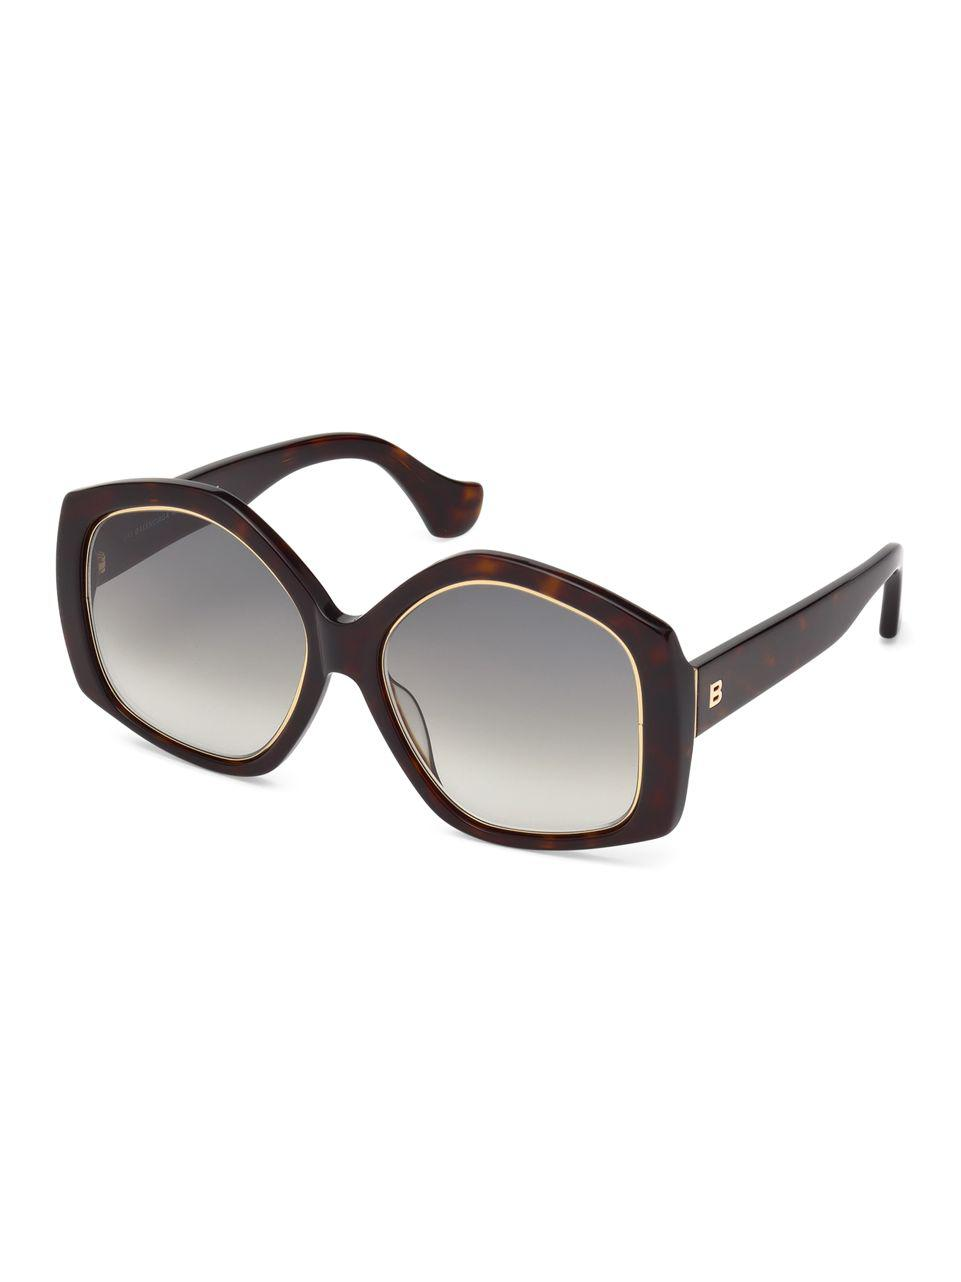 5d64c279365 Lyst - Balenciaga 55mm Butterfly Sunglasses in Brown